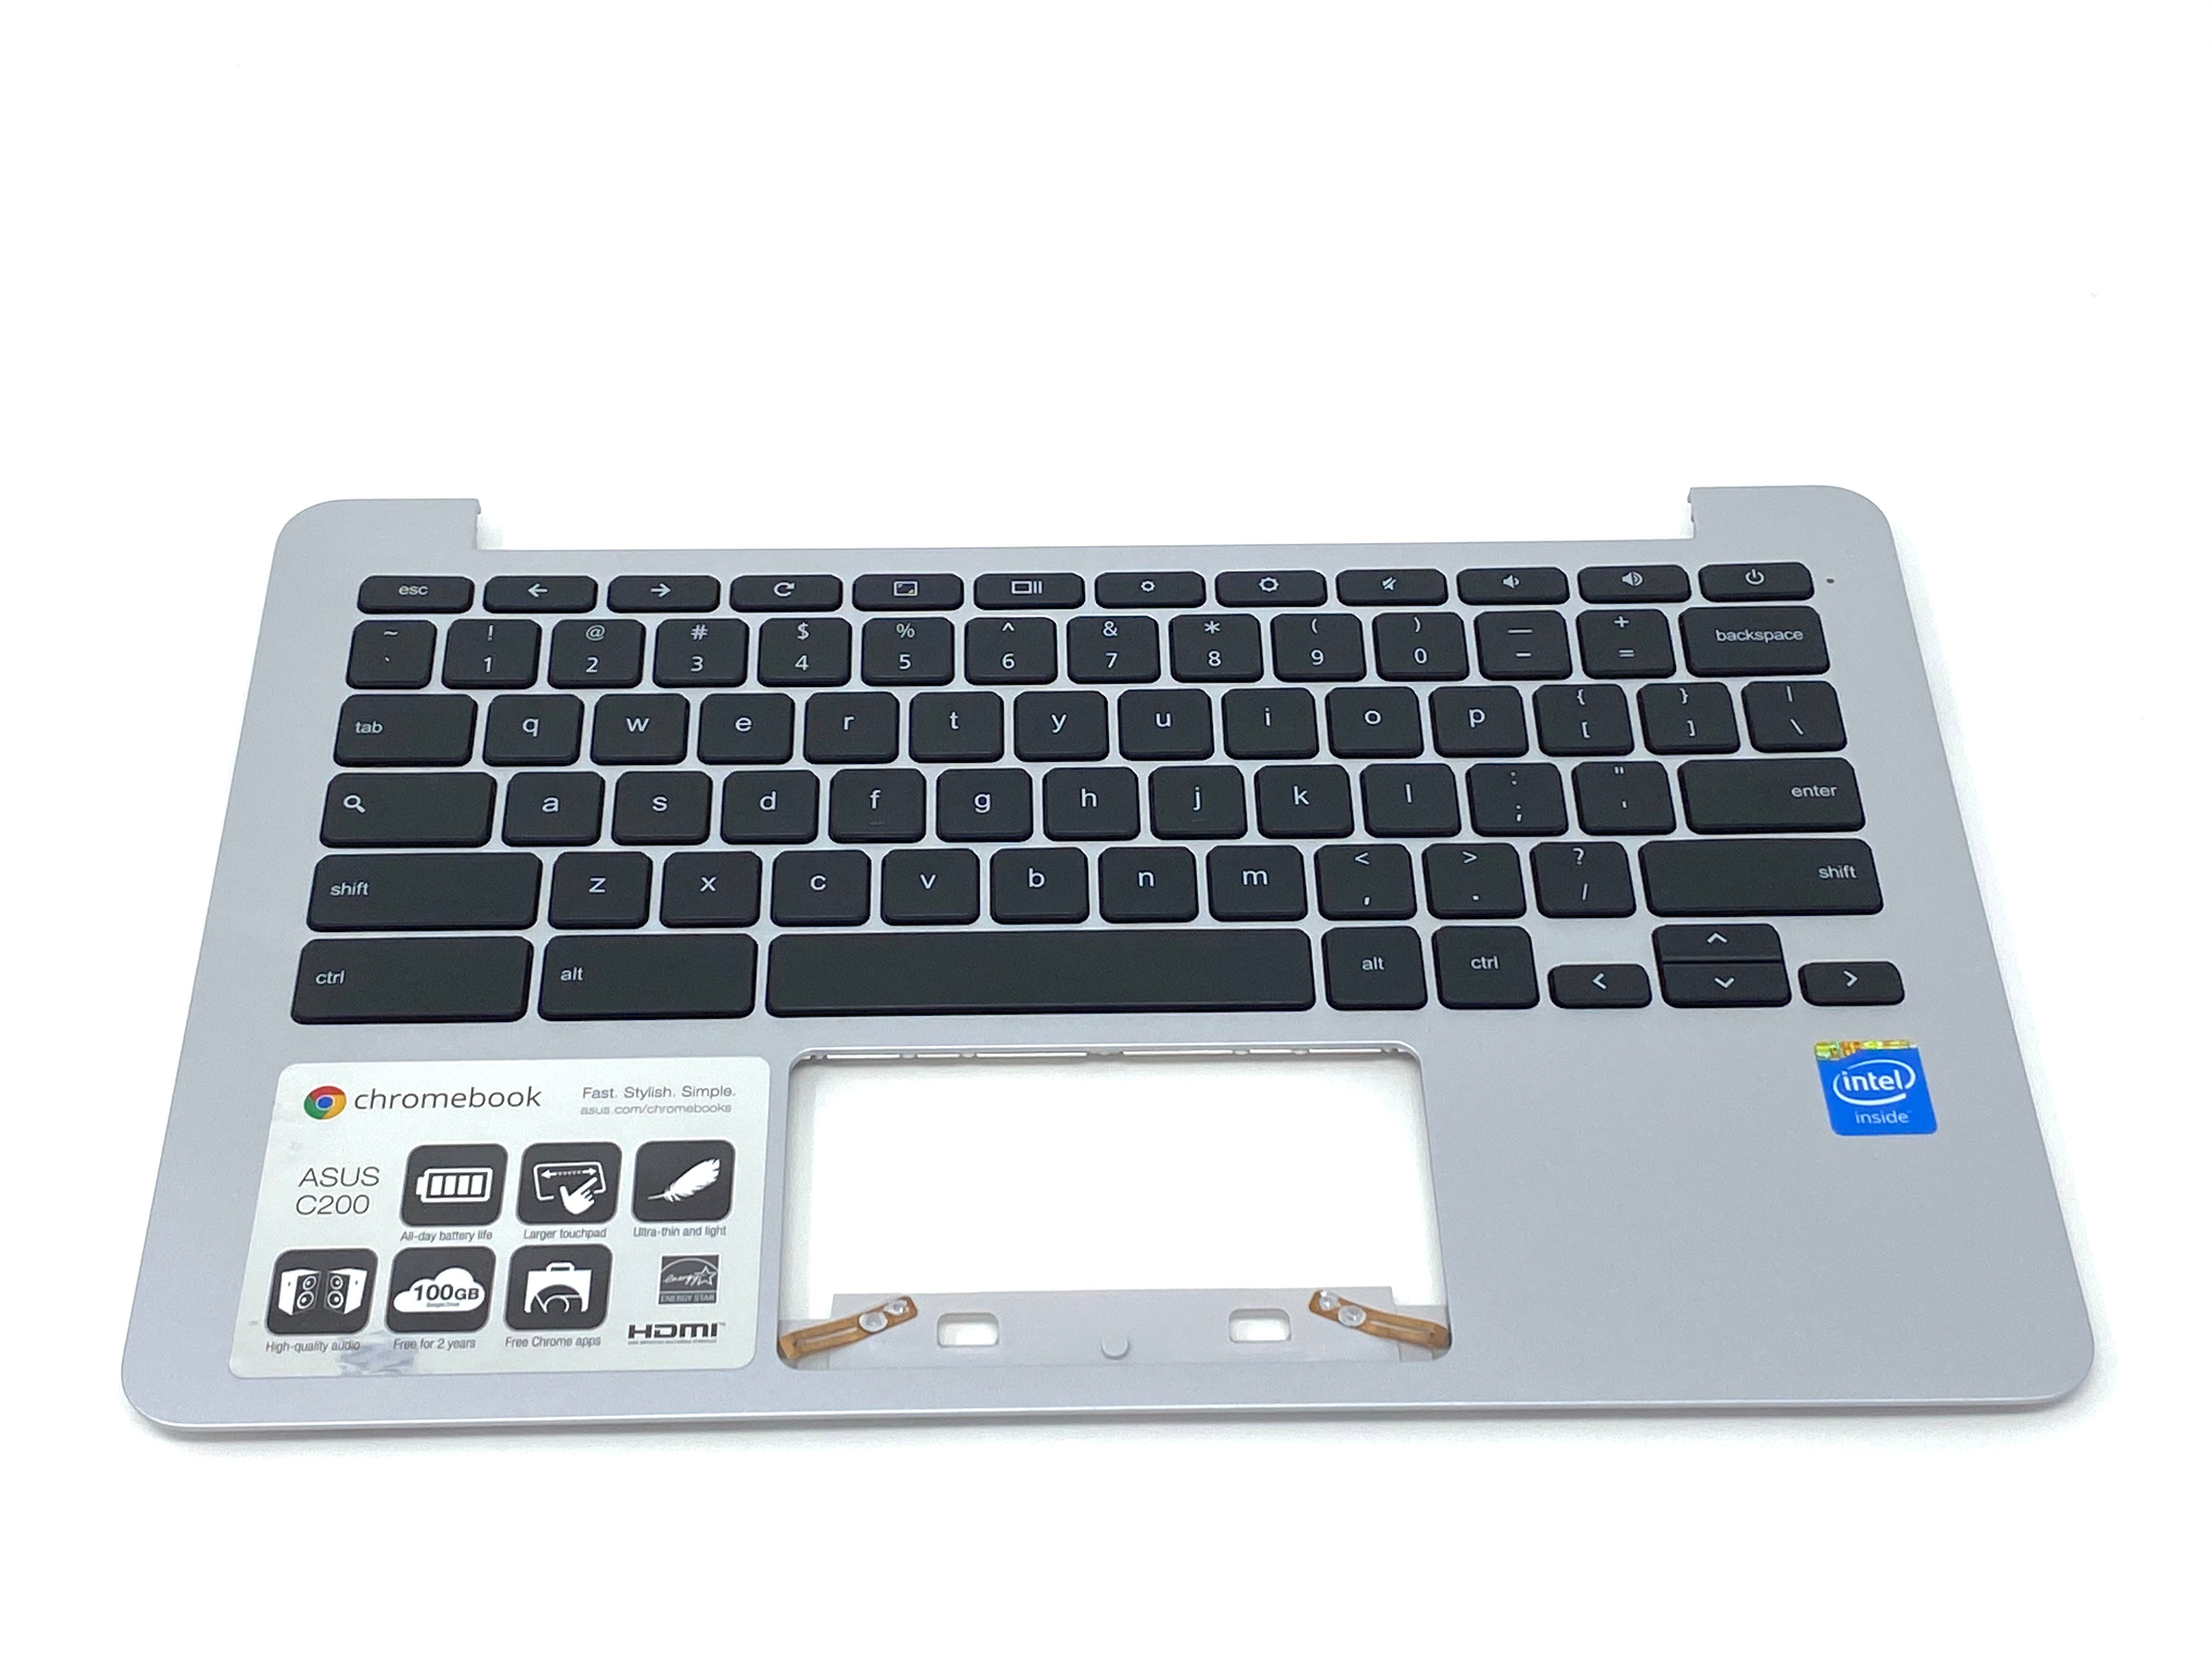 Asus Chromebook 11 C200MA Palmrest Keyboard Assembly - 13NB05M1AP0301.